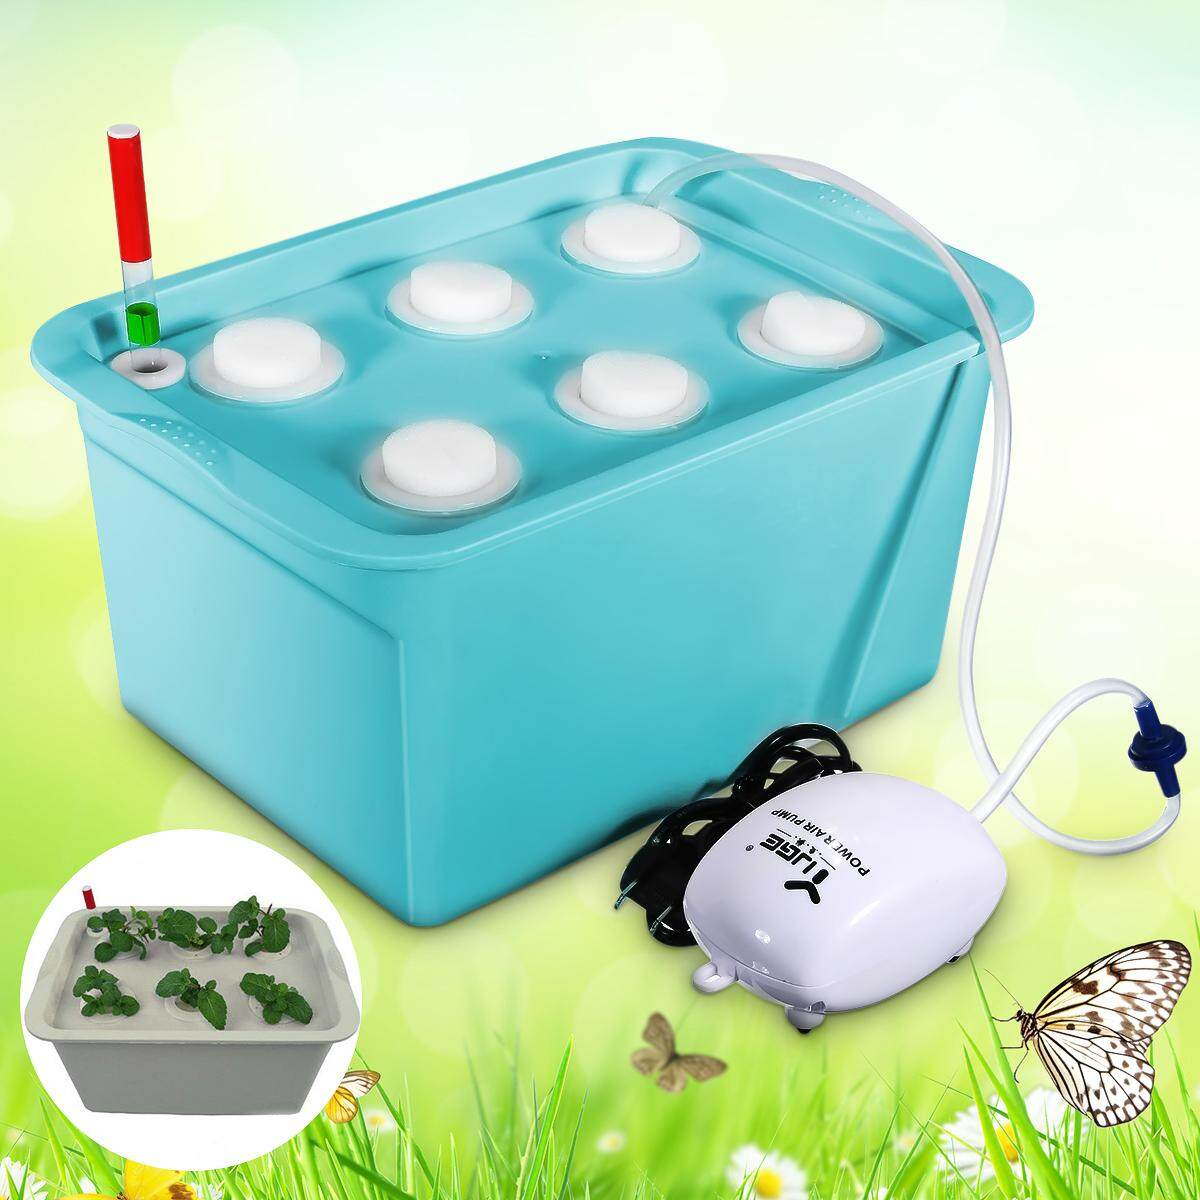 6 Plant Site Deep Water Culture Hydroponic System Bubble Tub Air Pump Grow Kit Blue